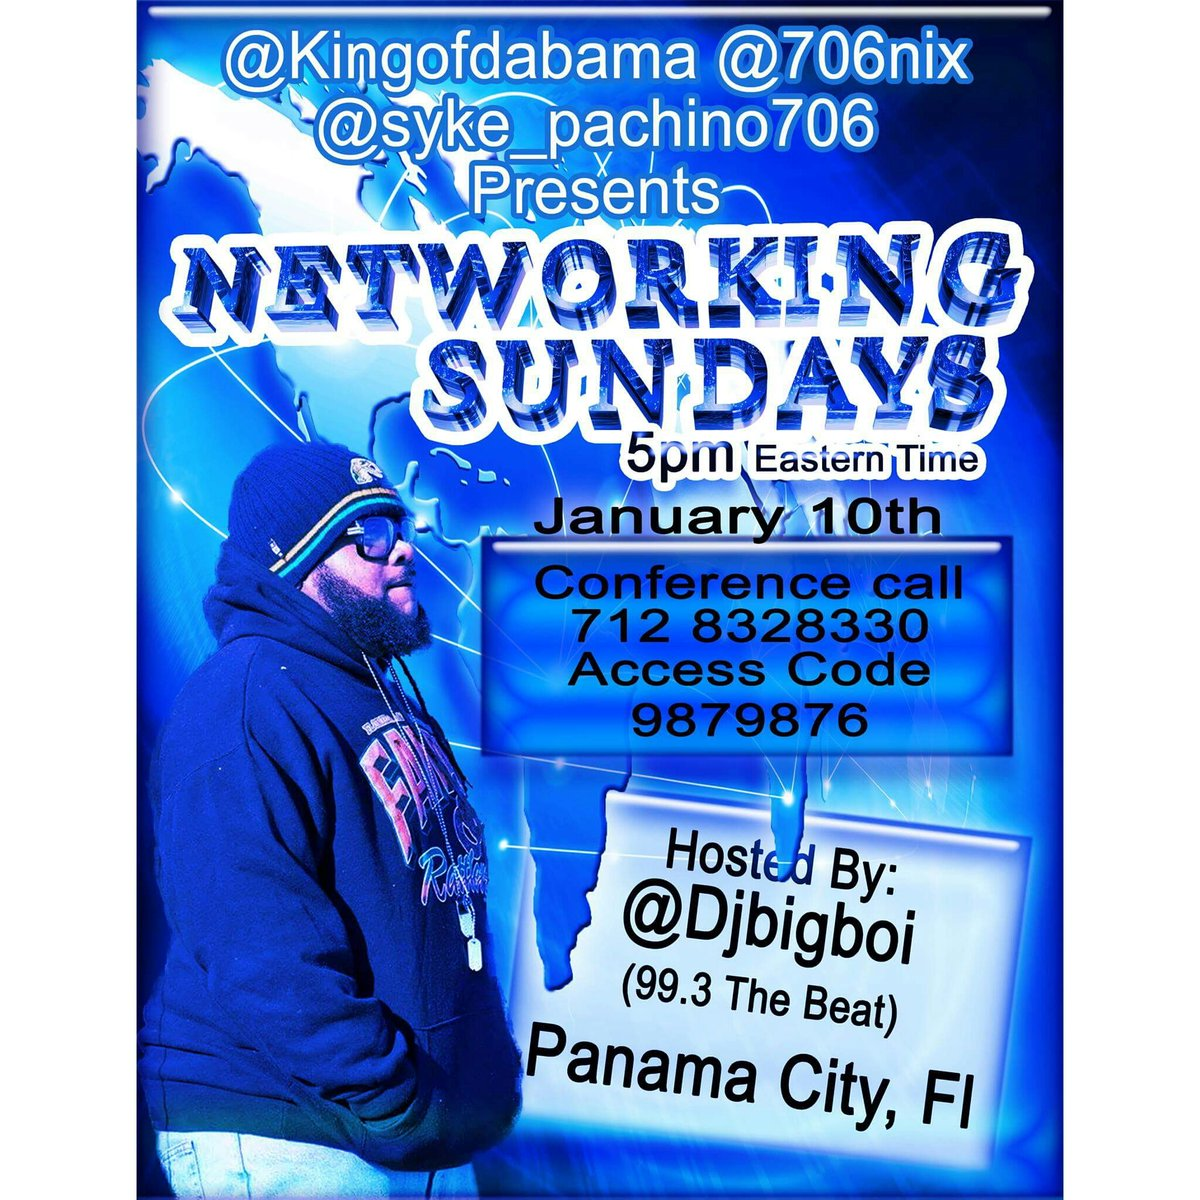 @Kingofdabama @706nix @syke_pachino706 Presents Networking Sundays Hosted By @Djbigboi (99.3 The Beat) Panama City https://t.co/krI4Hr9WWz